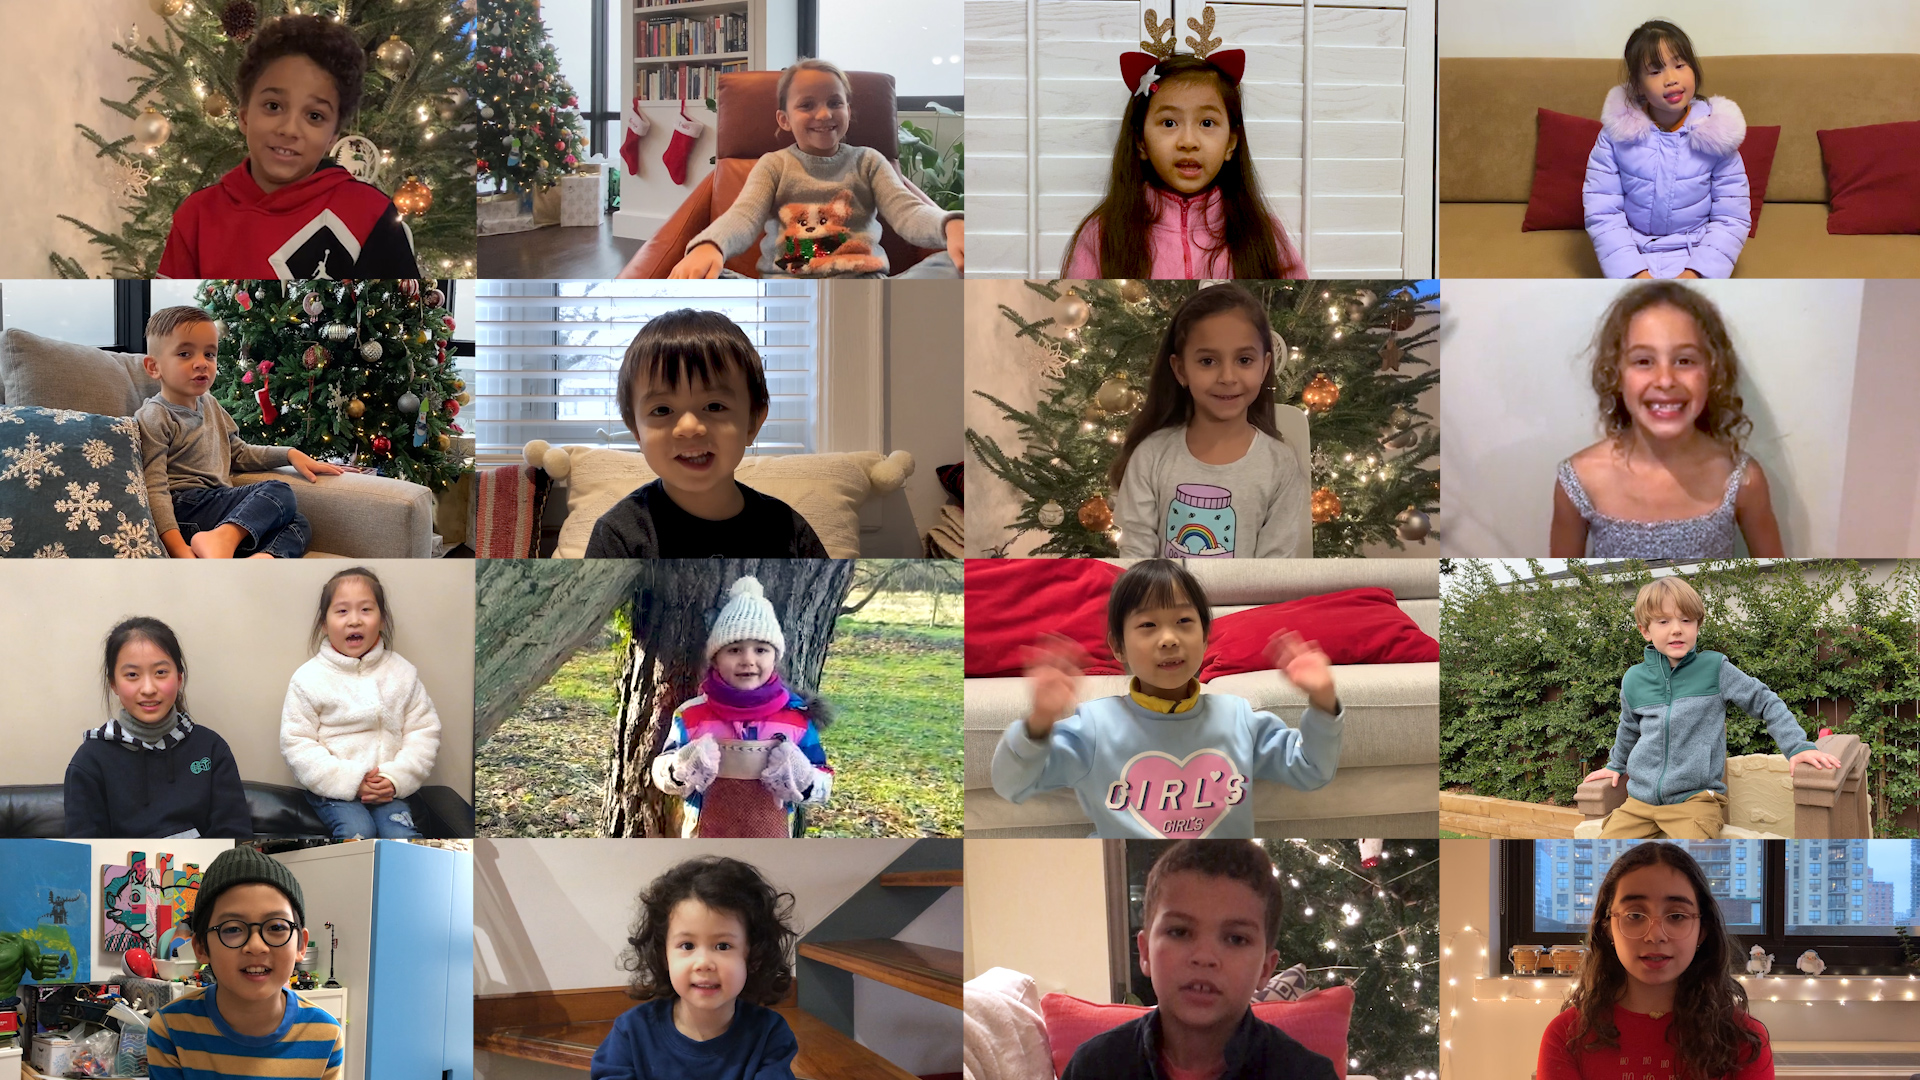 Kids want coal for Christmas in new 'Open Letter to Santa' Christmas video via Anomaly, London